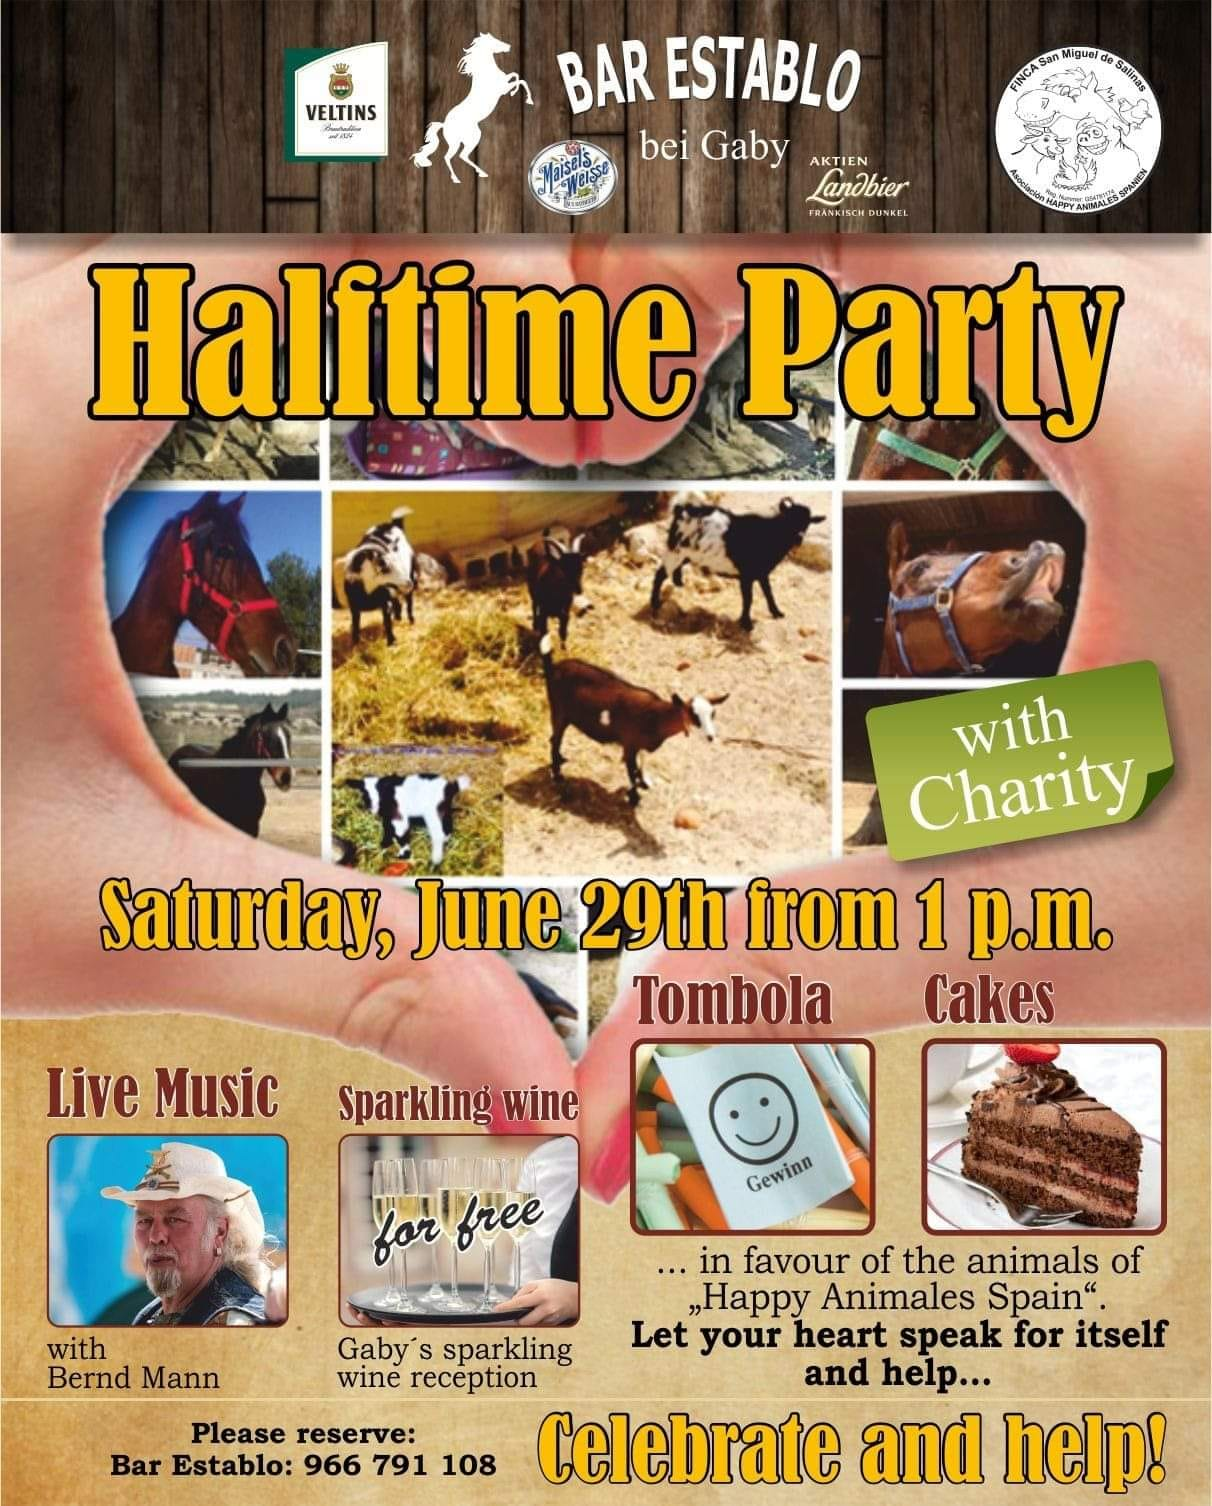 Saturday Party, Party at Happy Animales